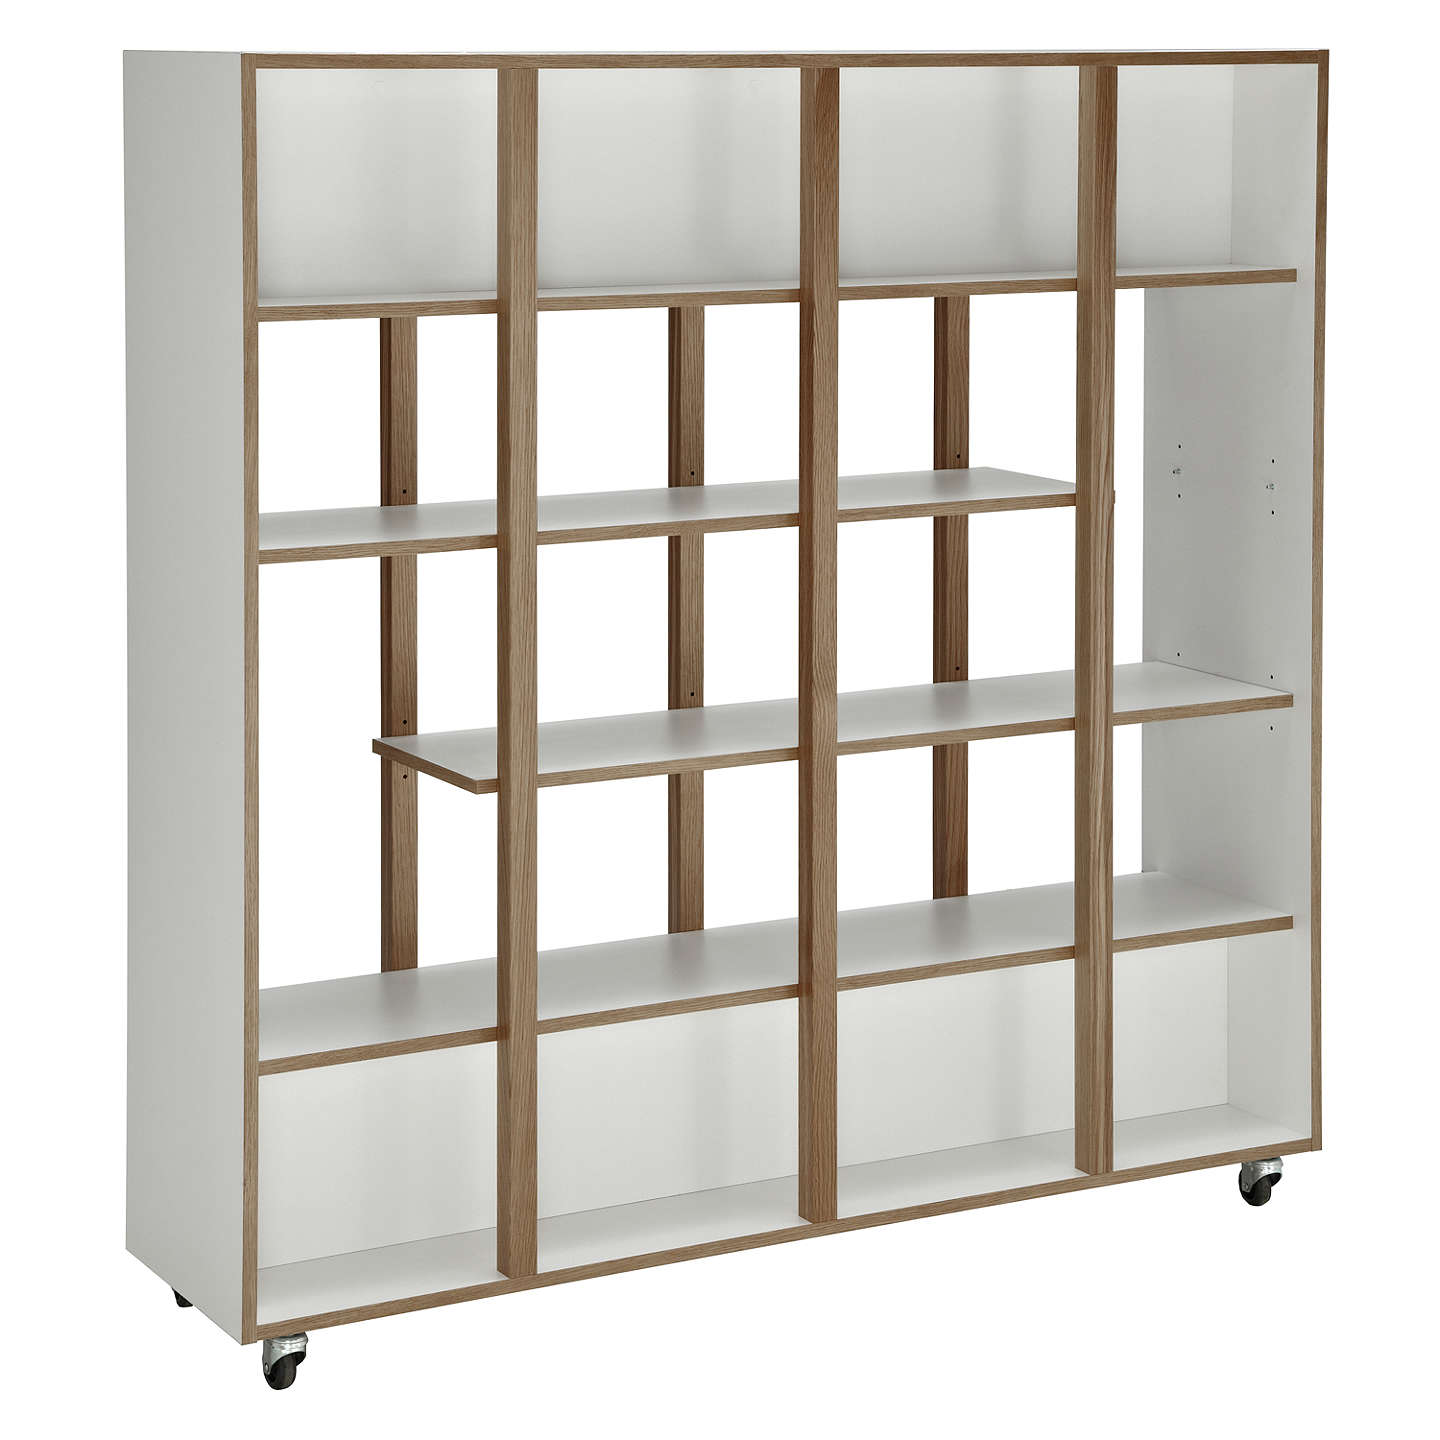 Buyhouse By John Lewis Newbury Room Divider Online At Johnlewiscom